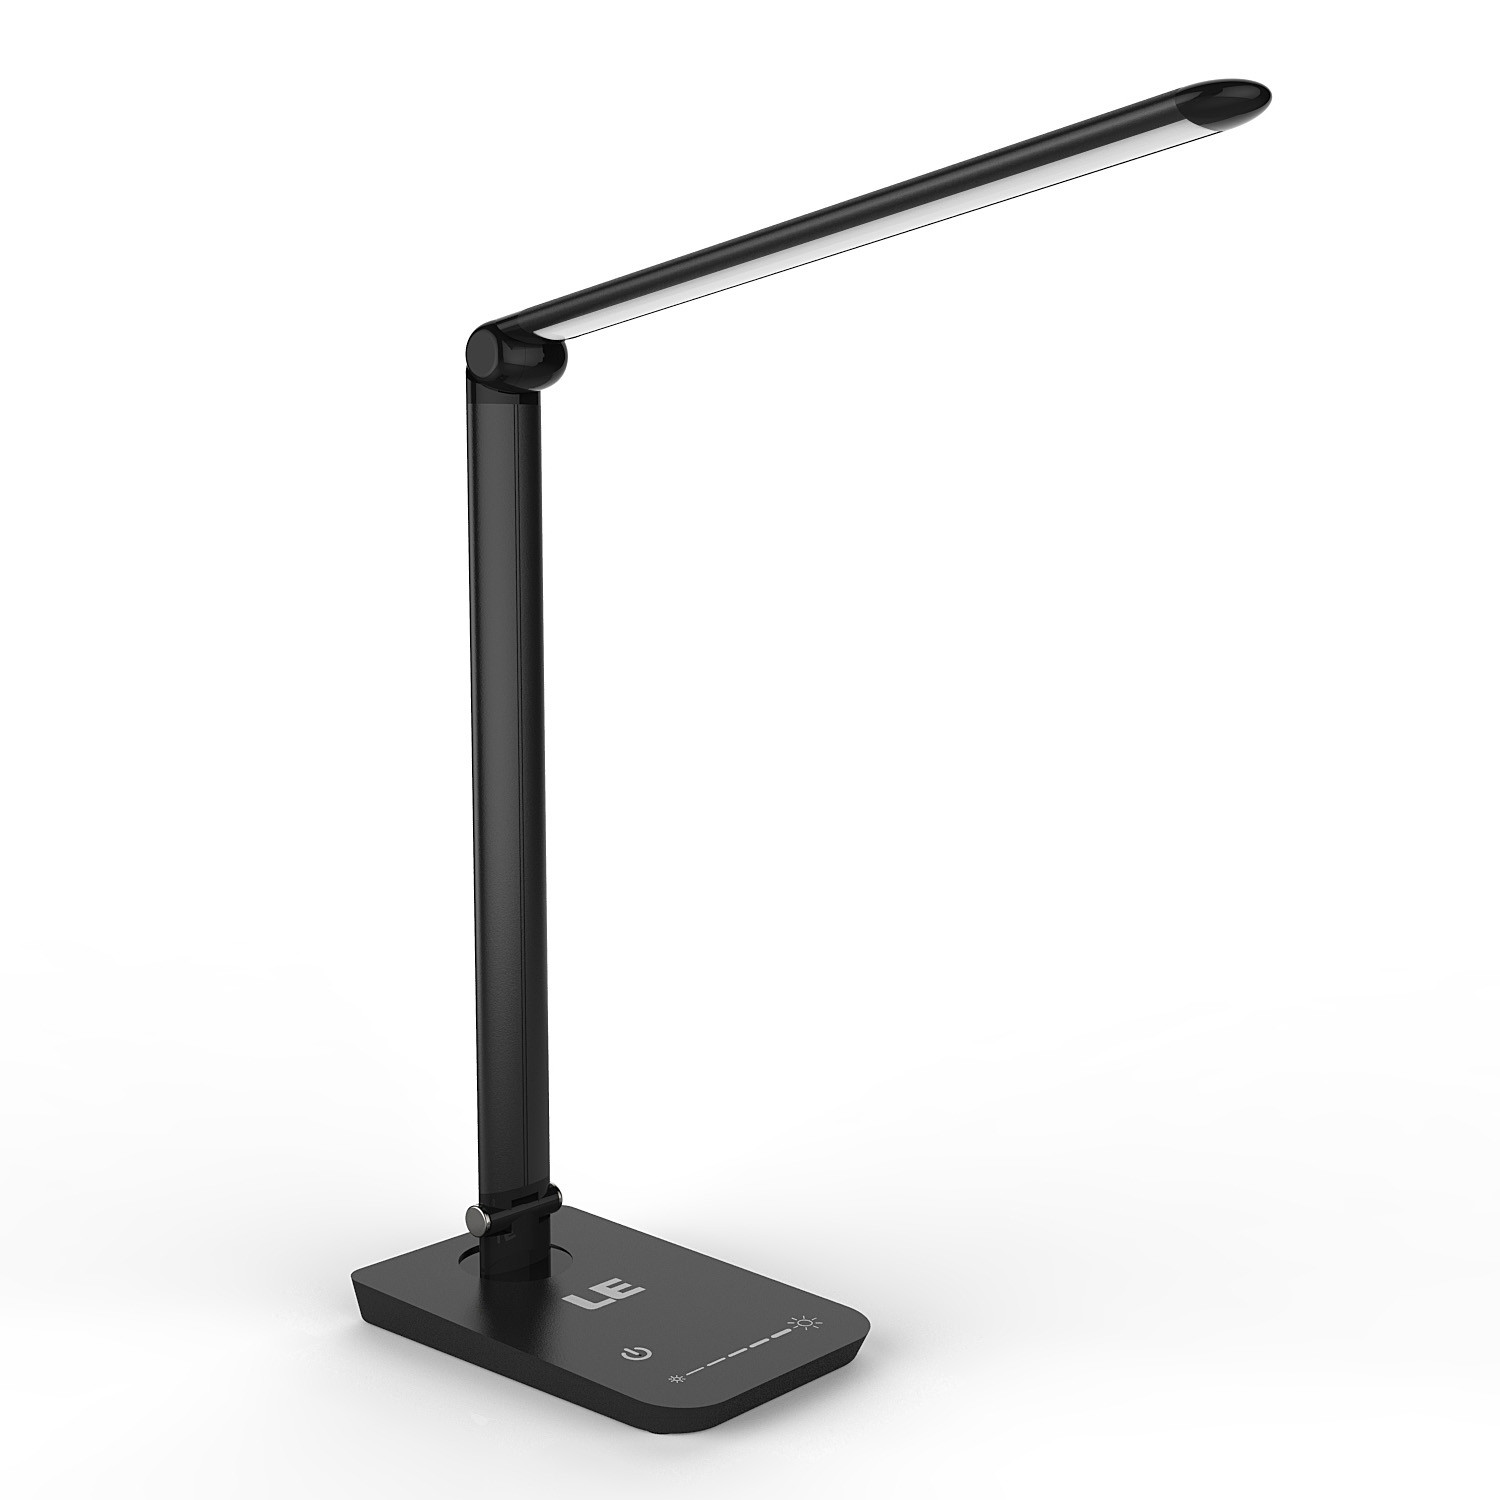 Best ideas about Led Desk Lamps . Save or Pin 8W Dimmable LED Desk Lamp 500lm Reading Light Now.